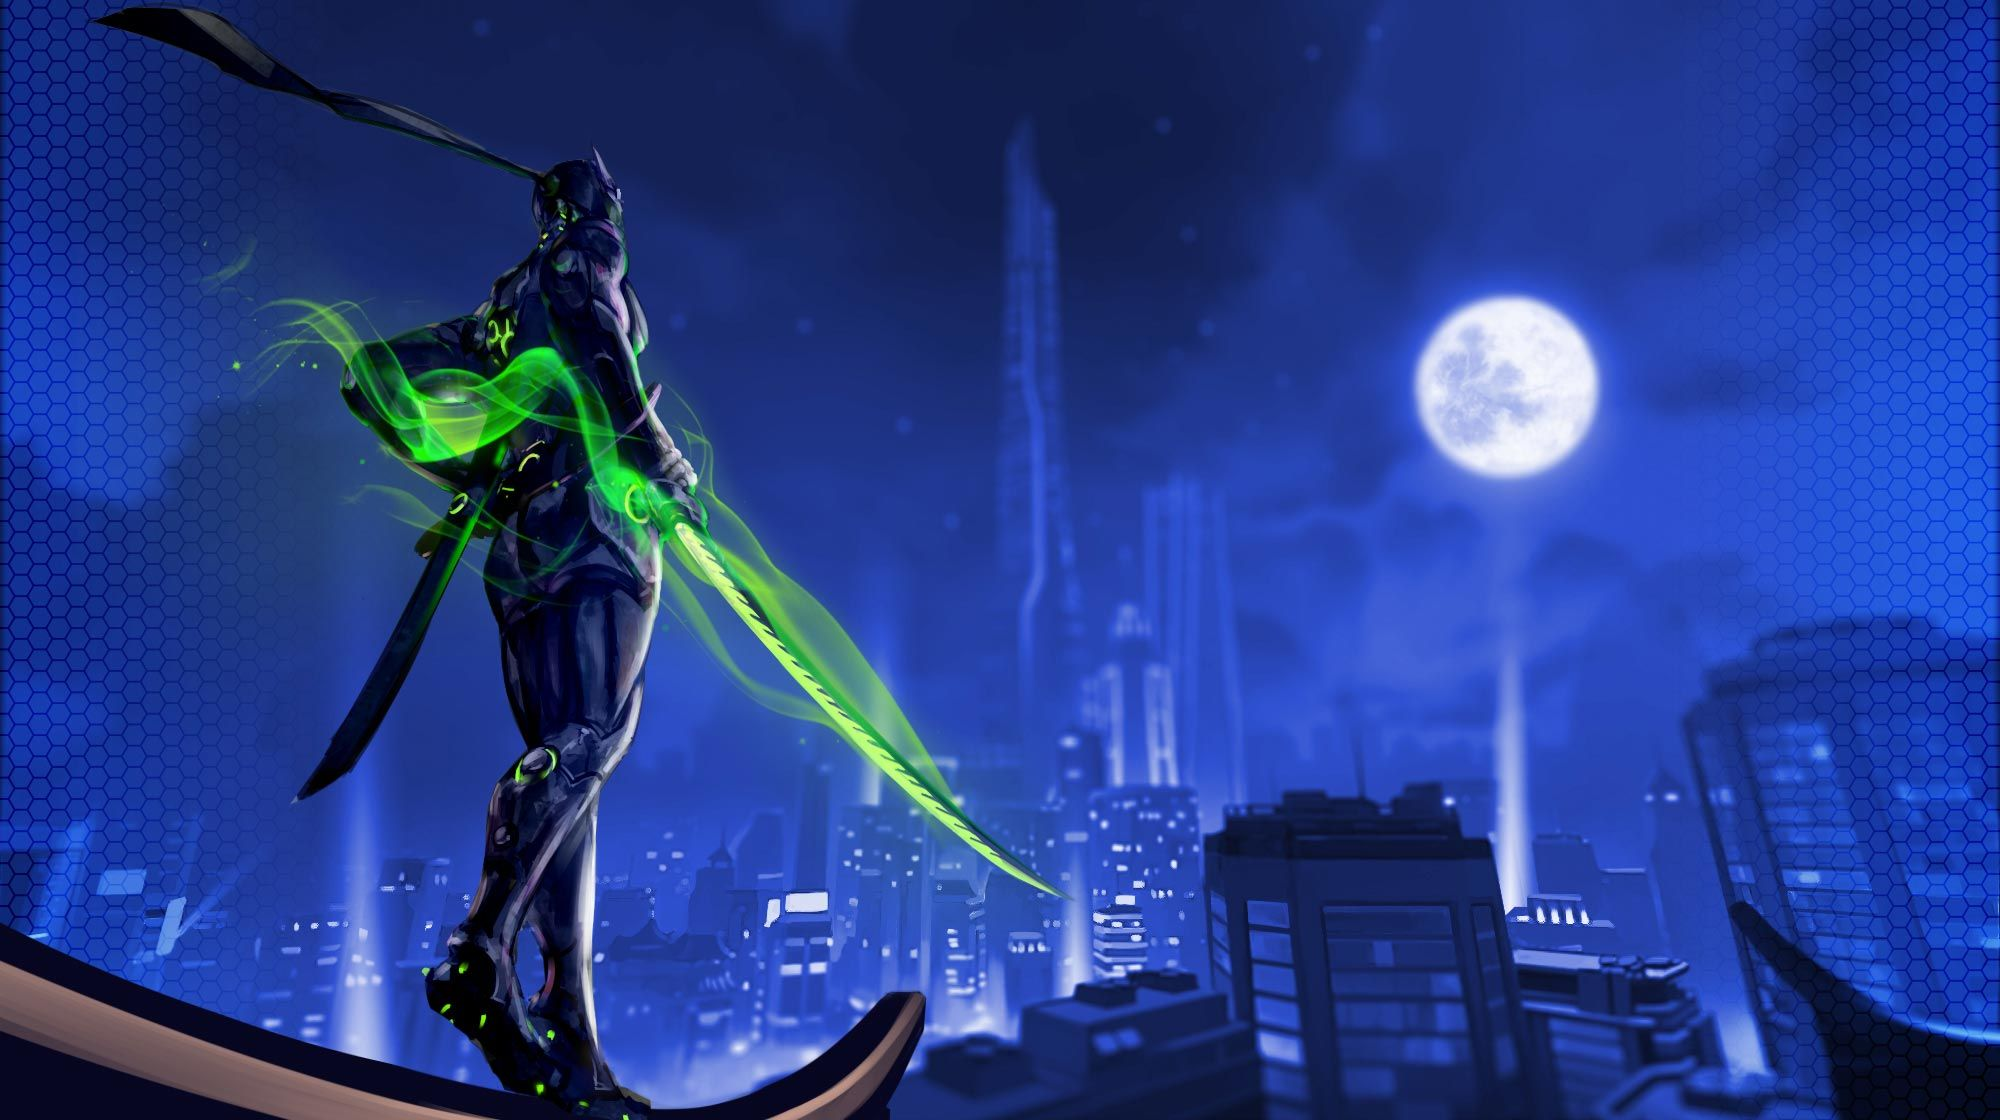 Download wallpaper Genji skin full HD on GameWalls Overwatch 2000x1120